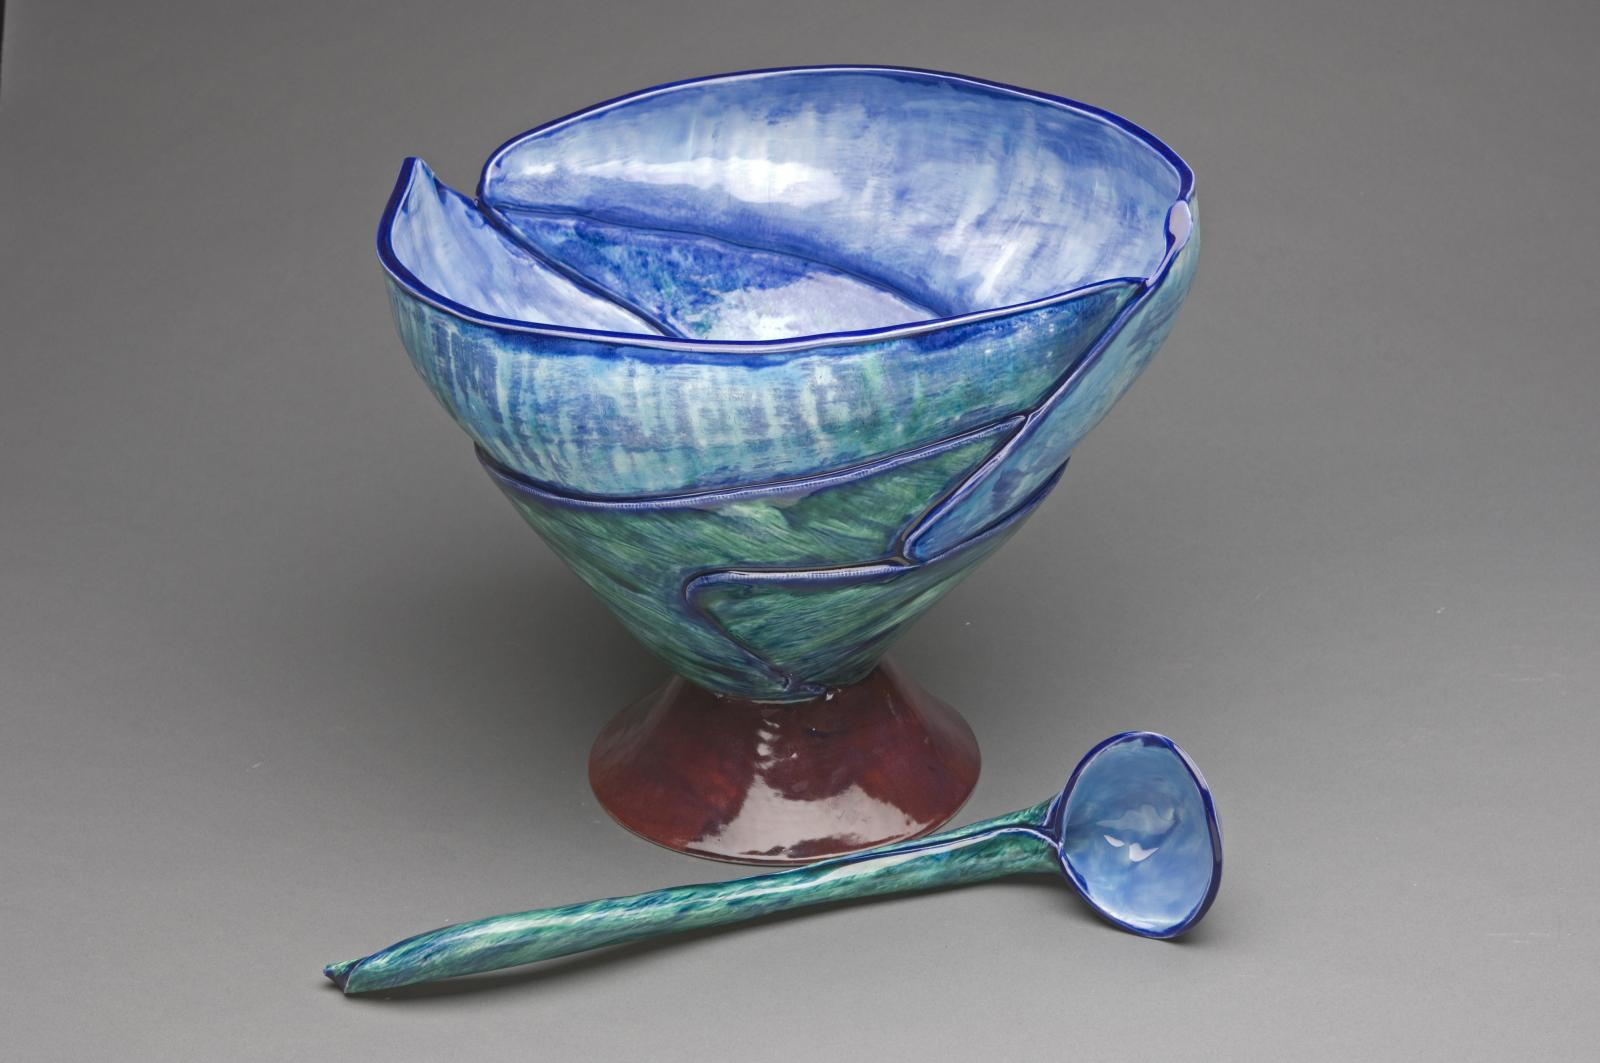 Punchbowl with Ladle